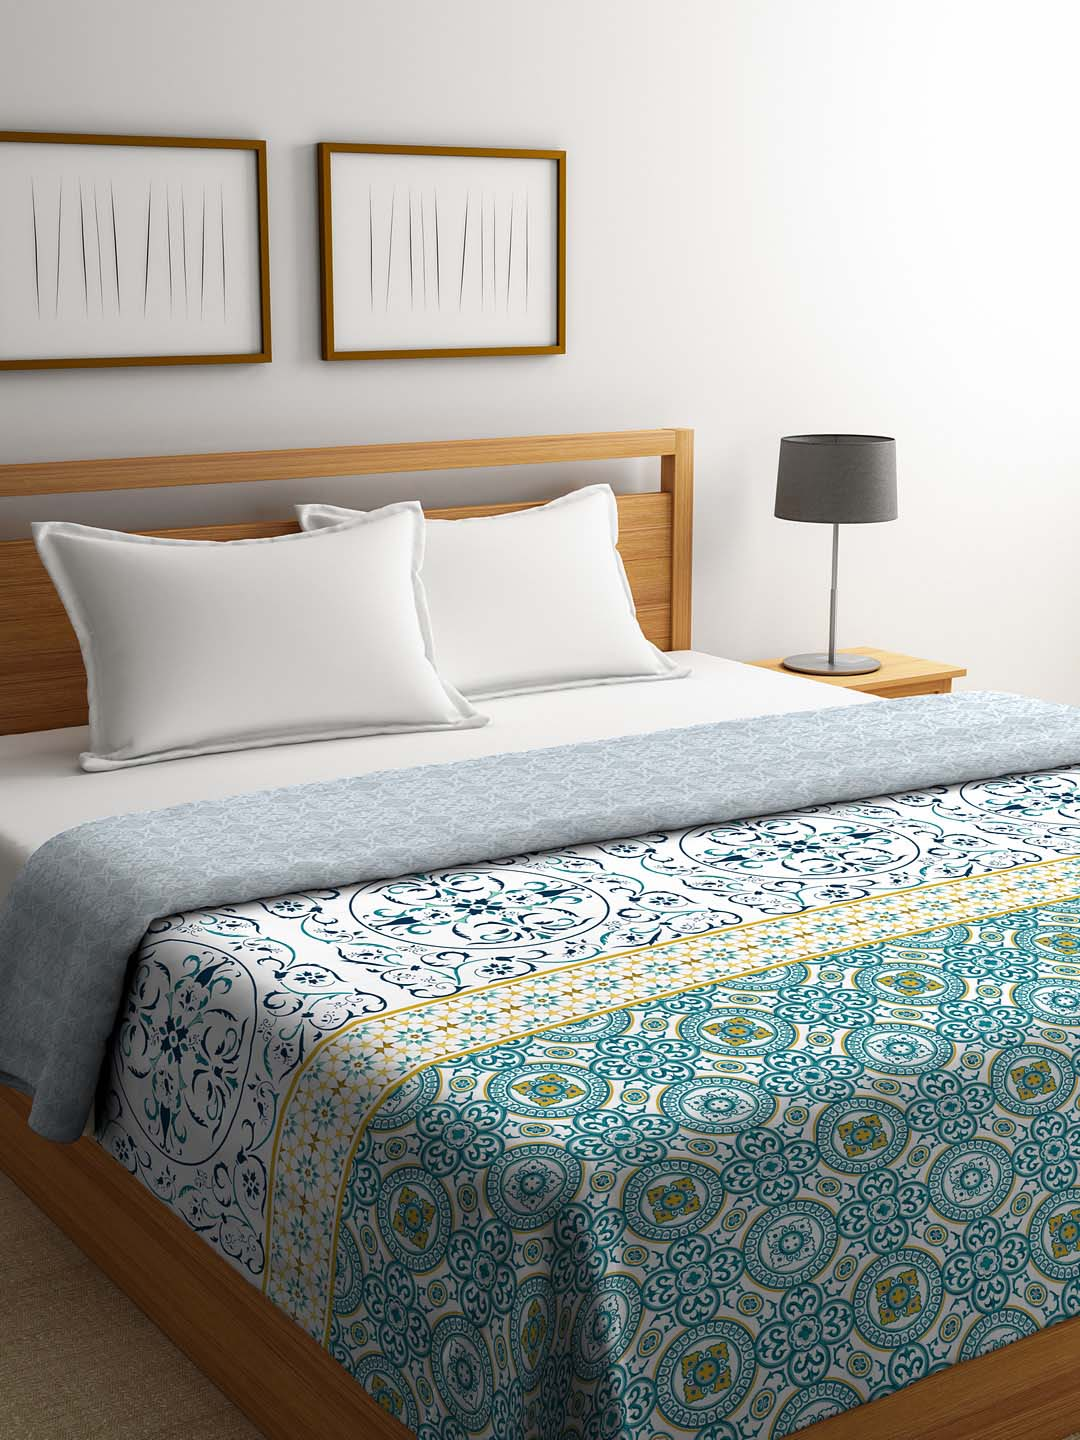 Portico New York Mosaics 100 Cotton Blue White Comforter Set Of 1 From Portico New York At Best Prices On Tata Cliq